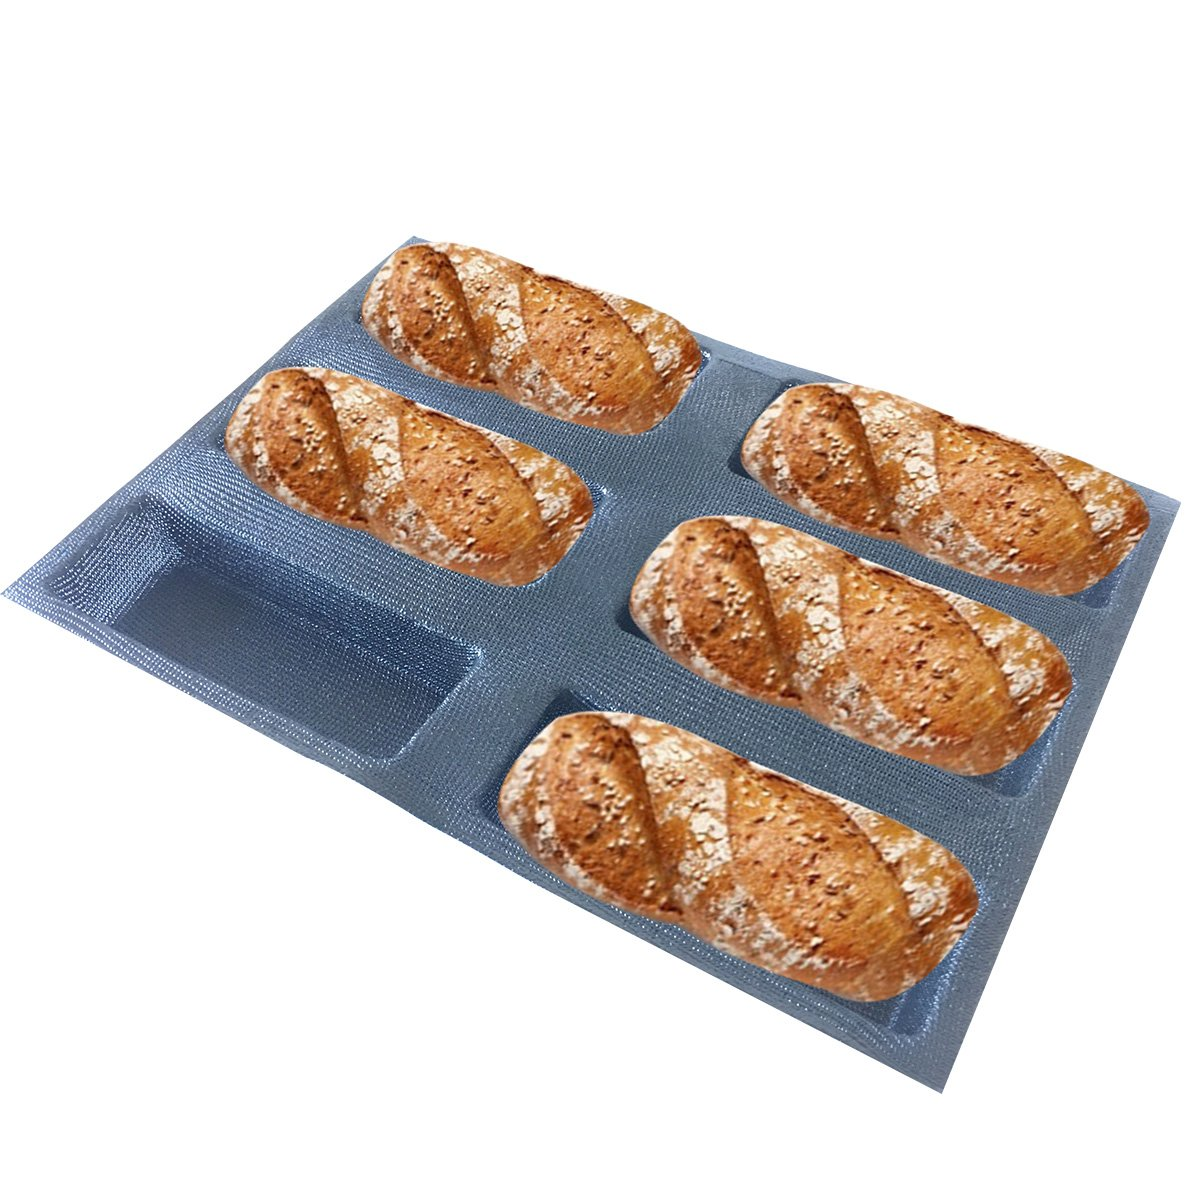 Bluedrop Silicone Bread Forms Square Shape Bread Molds Non Stick Bakery Trays Silicone Coated Fiber Glass 6 Caves Rectangle Moulds